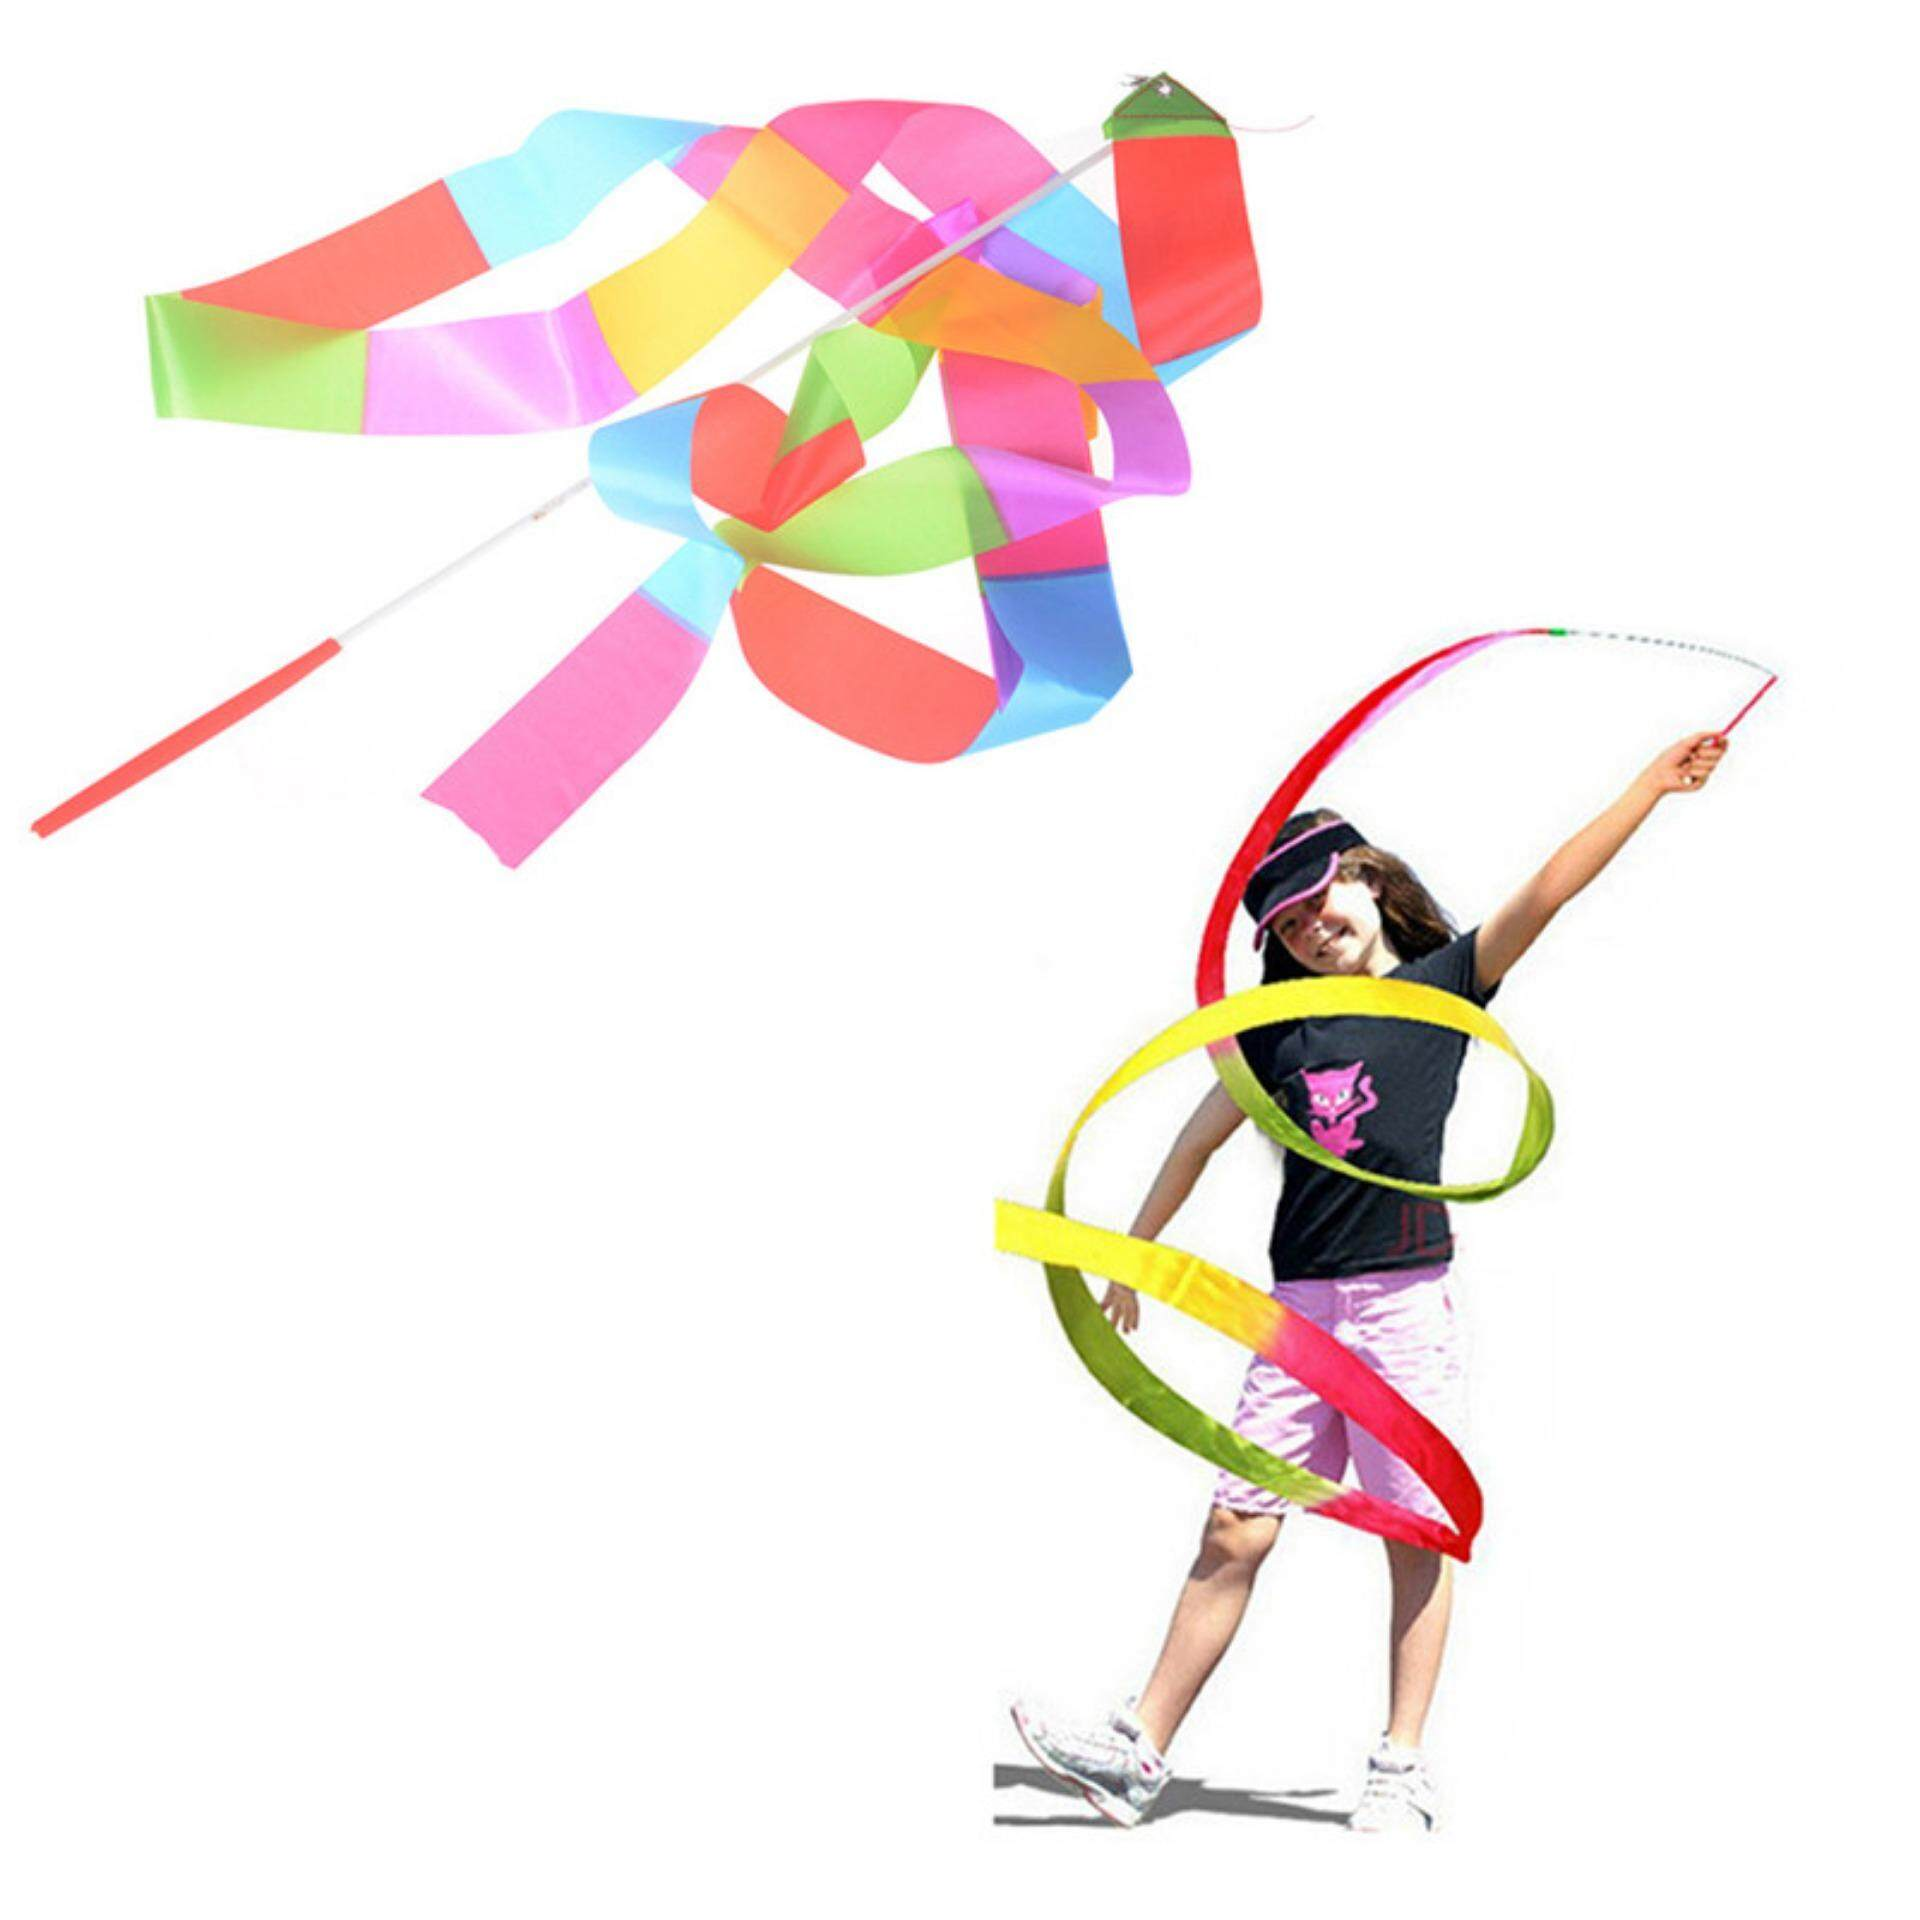 Popular Colorful 4m Ribbon Gymnastics Dance Dancer Toy Kid Outdoor Sport Toy By Zozo Store.